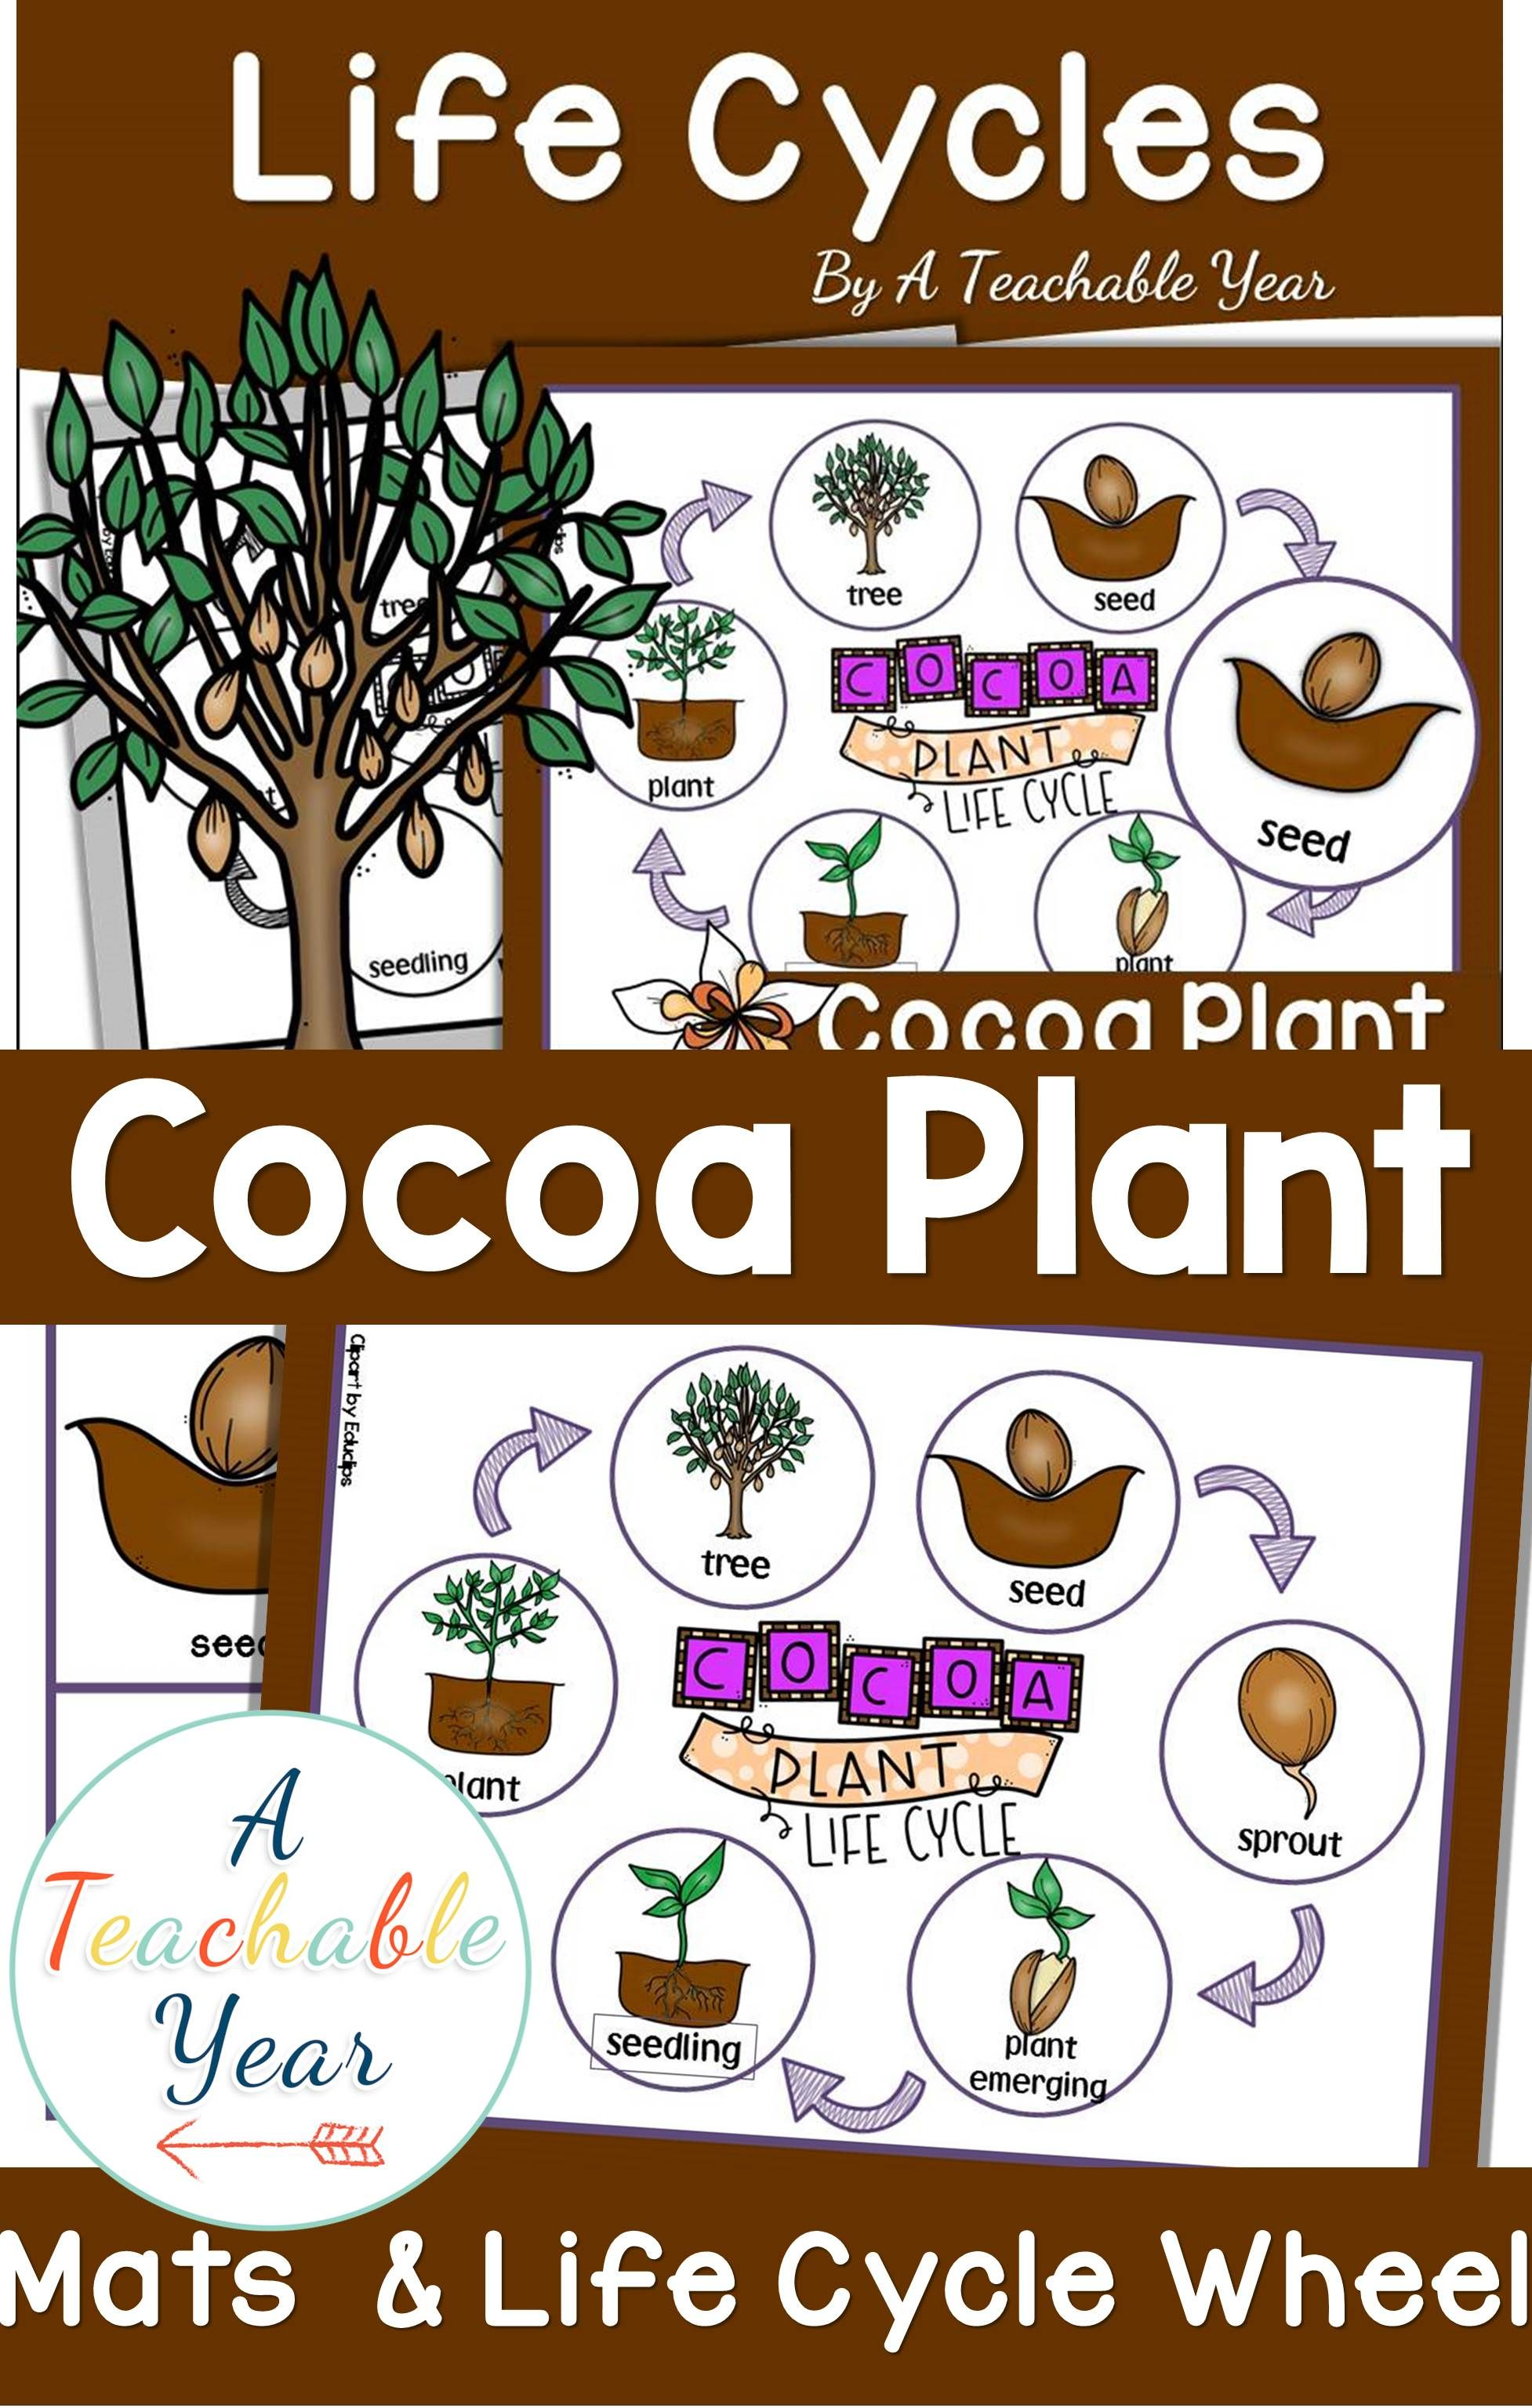 Cocoa Plant Life Cycle Activities